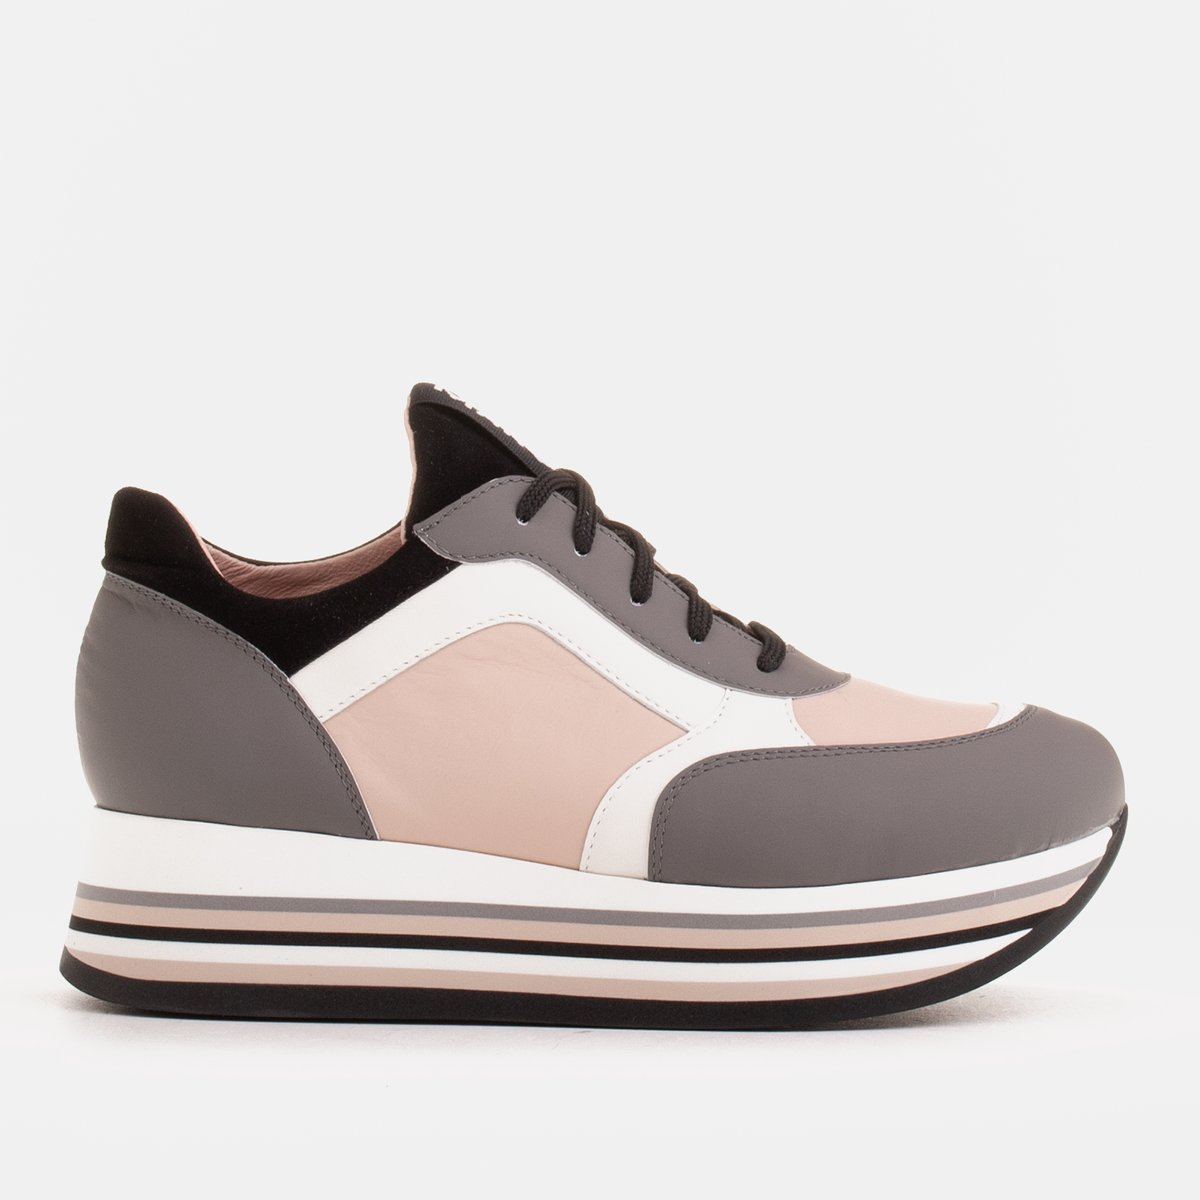 Light sneakers on a thick sole made of